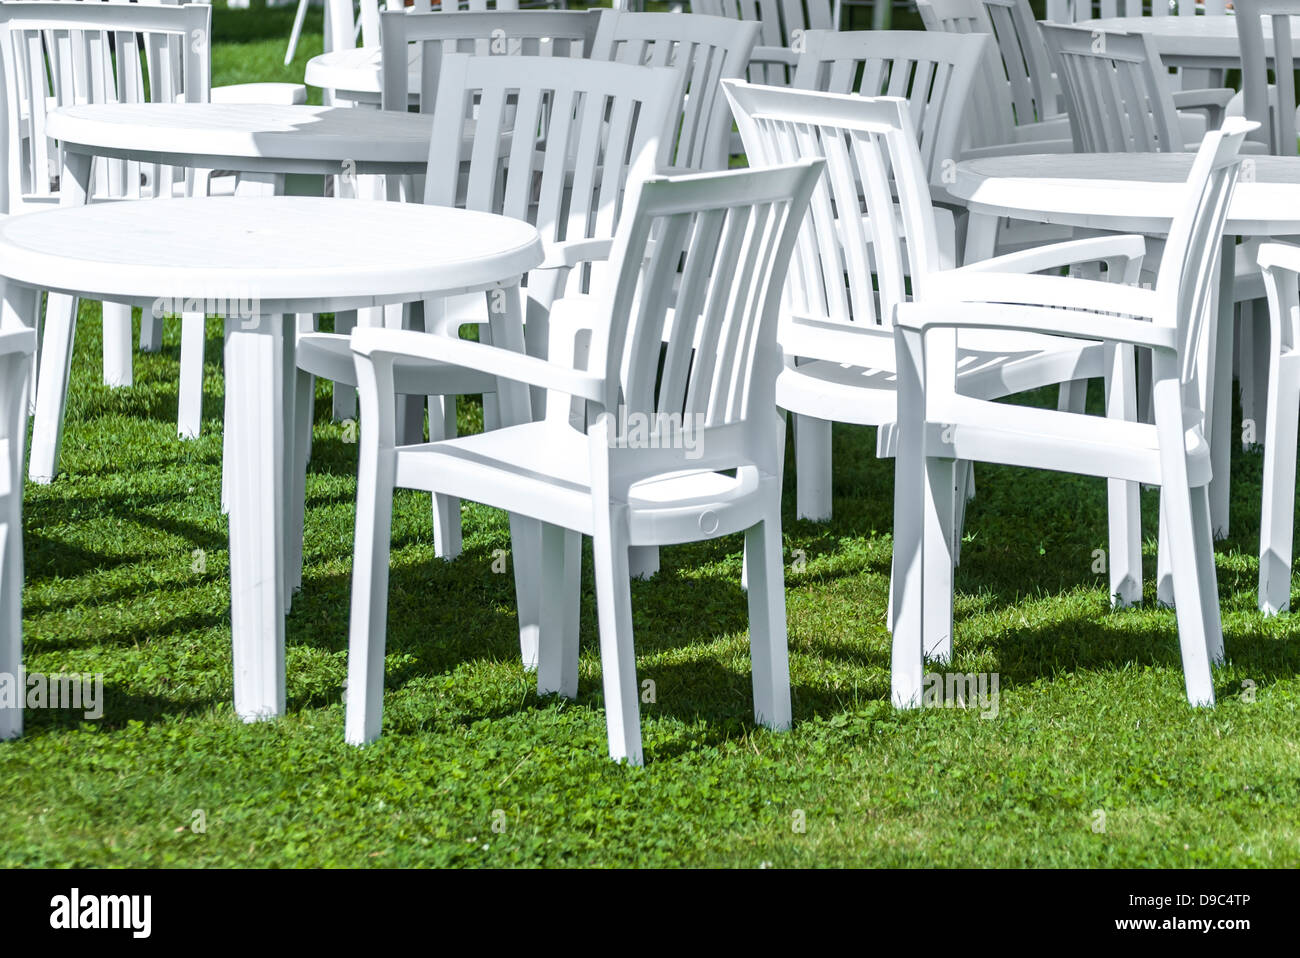 White plastic garden furniture on a lawn Stock Photo - Alamy